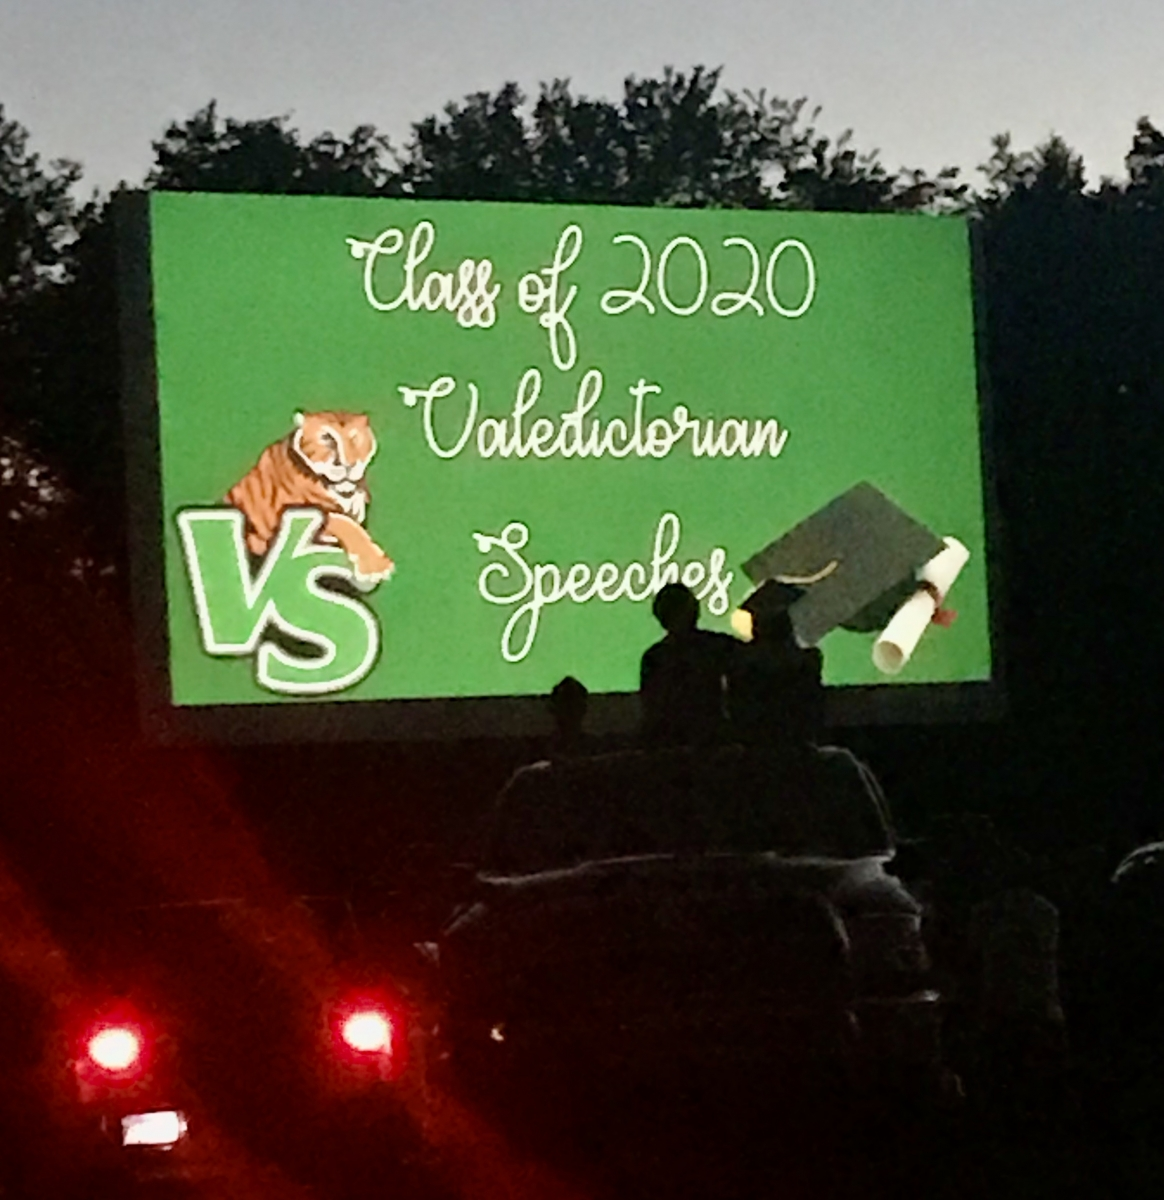 The screen at the Kenda Drive-in during the Valley Springs High School graduation.